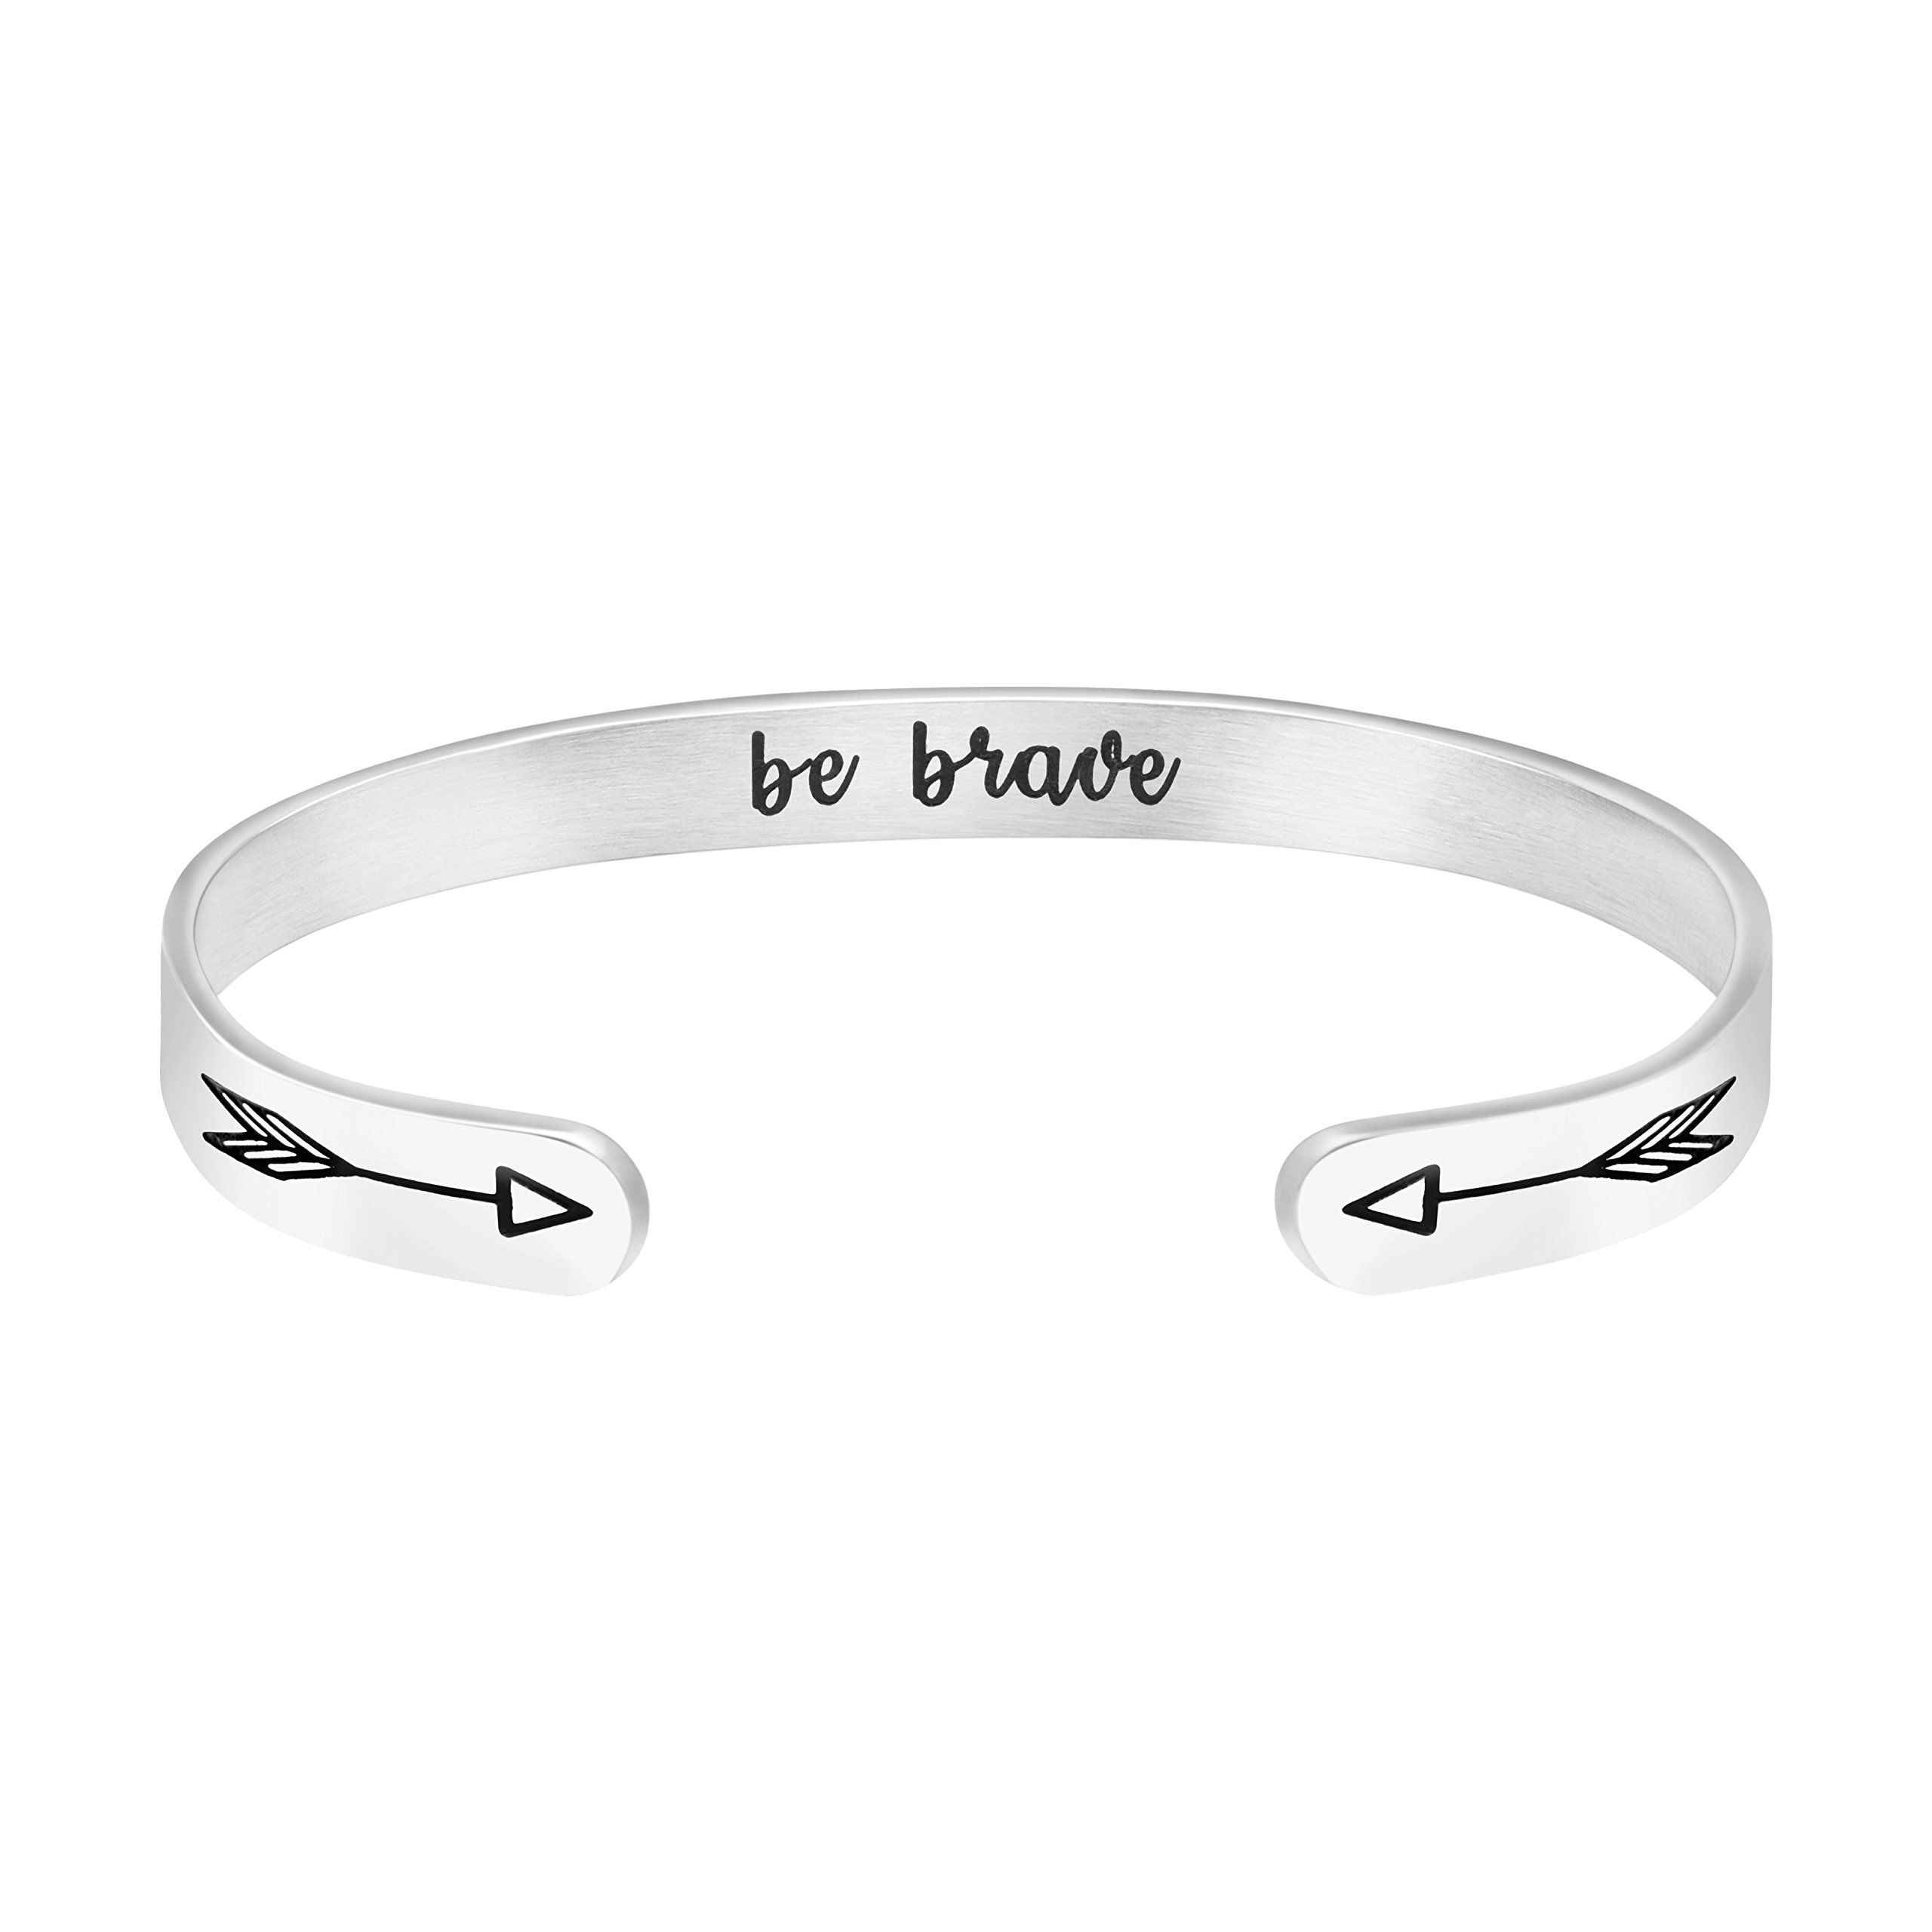 Awegift Inspirational Jewelry Stainless Steel Cuff Message Bracelet Motivational Gifts for Her Engraved Be Brave